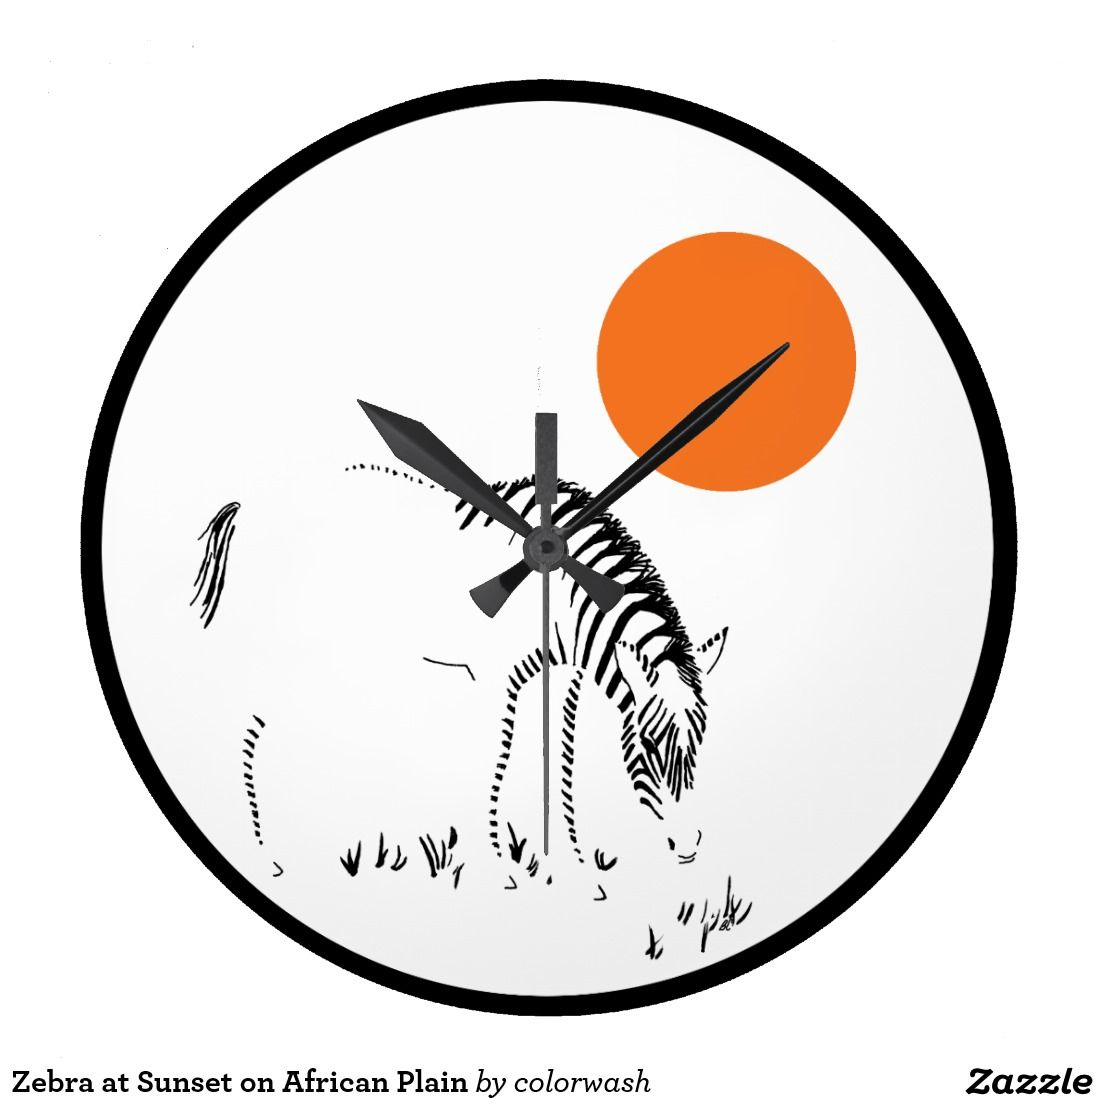 Zebra at Sunset on African Plain Large Clock - It will always be sunset in Africa on this unique clock with its original abstract illustration of a zebra browsing grass on the plain. The orange of the sun playing against the pure black and white turns time into art for the wall. #zebra #clock #Africa